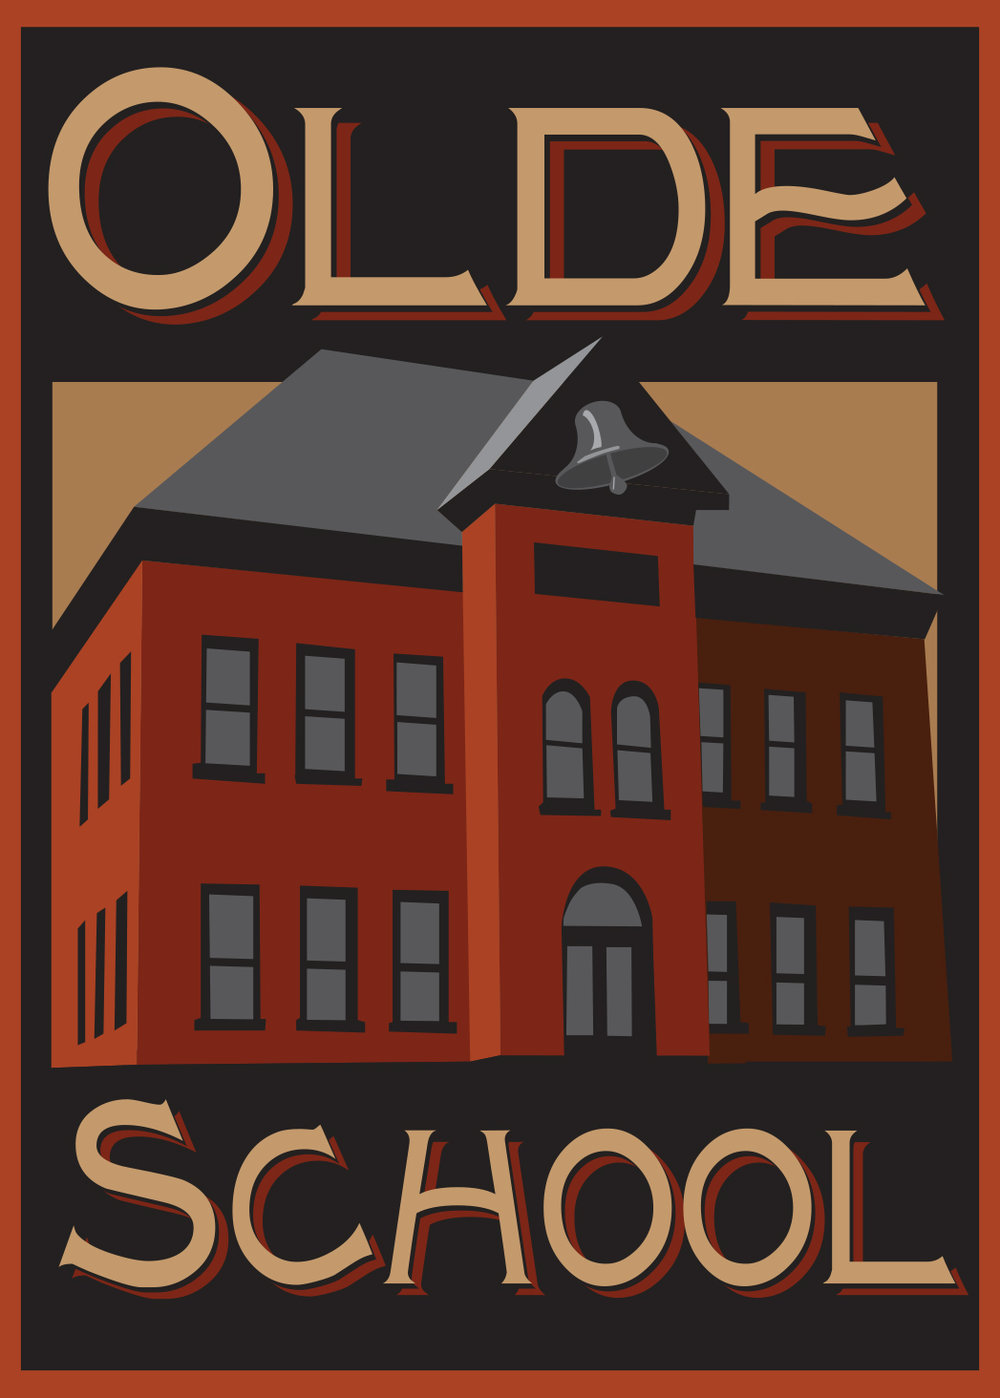 OldeSchool-logo.jpg